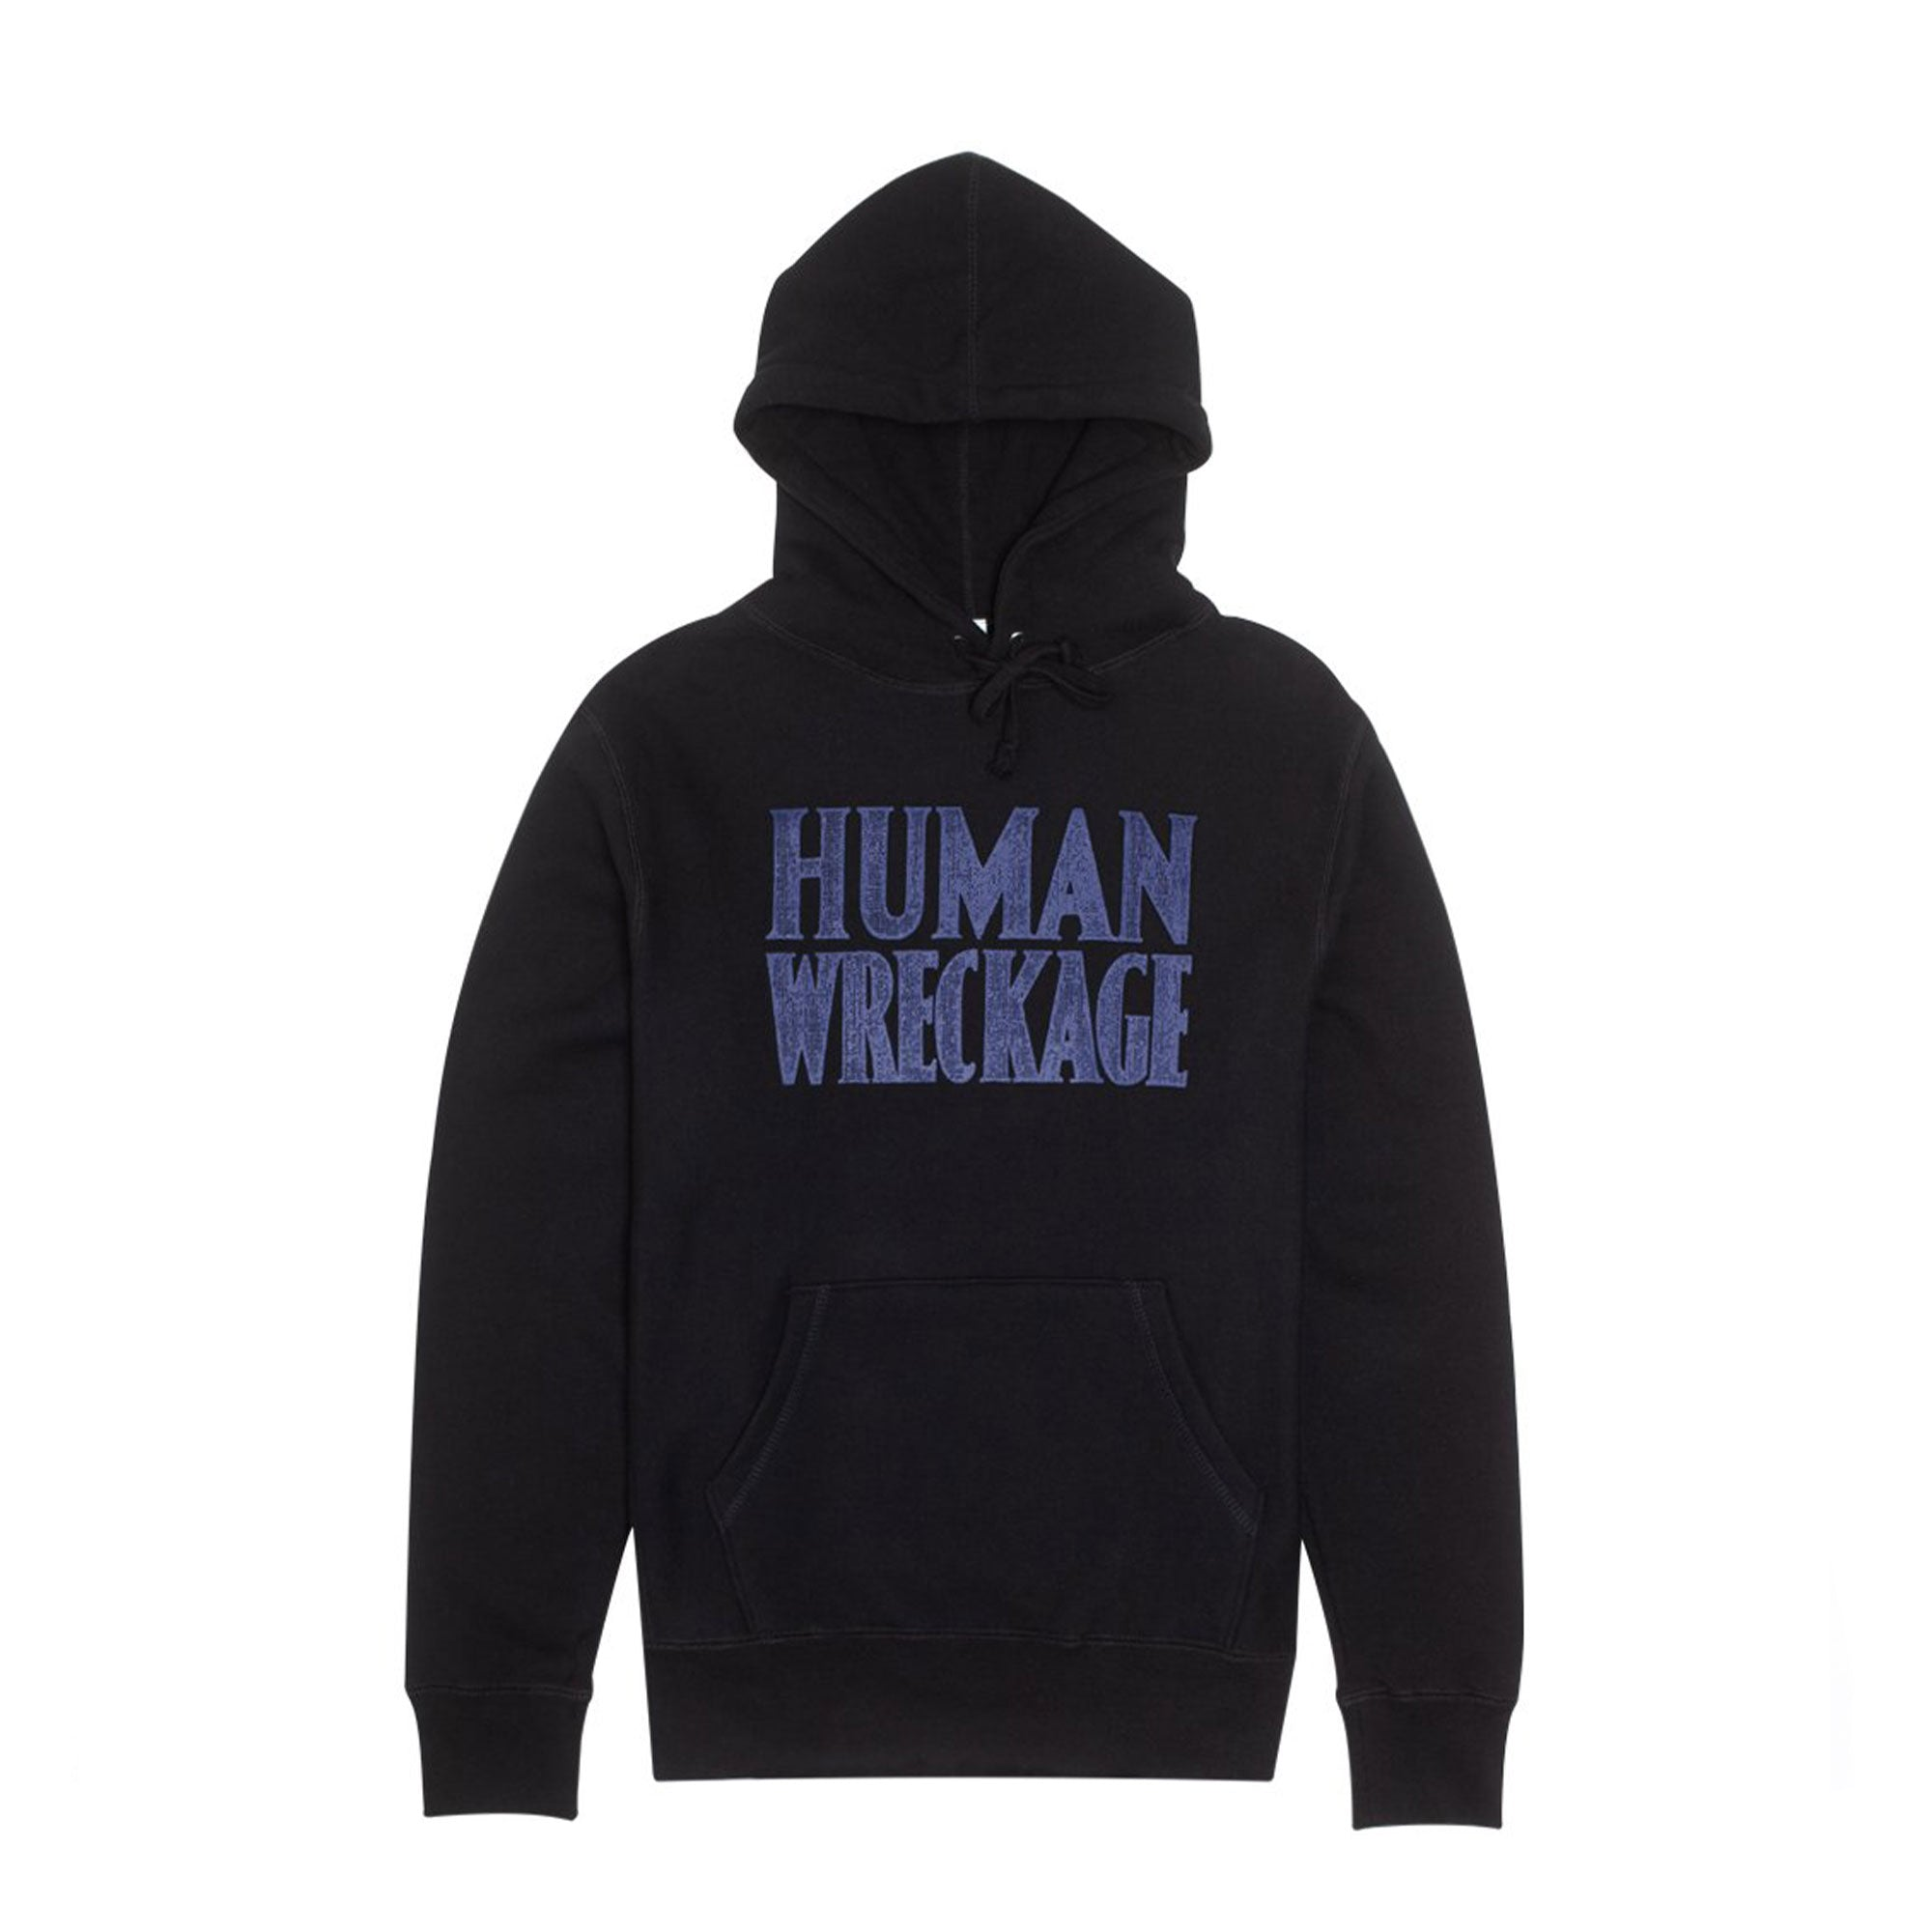 Fucking Awesome Human Wreckage Hood Product Photo #1